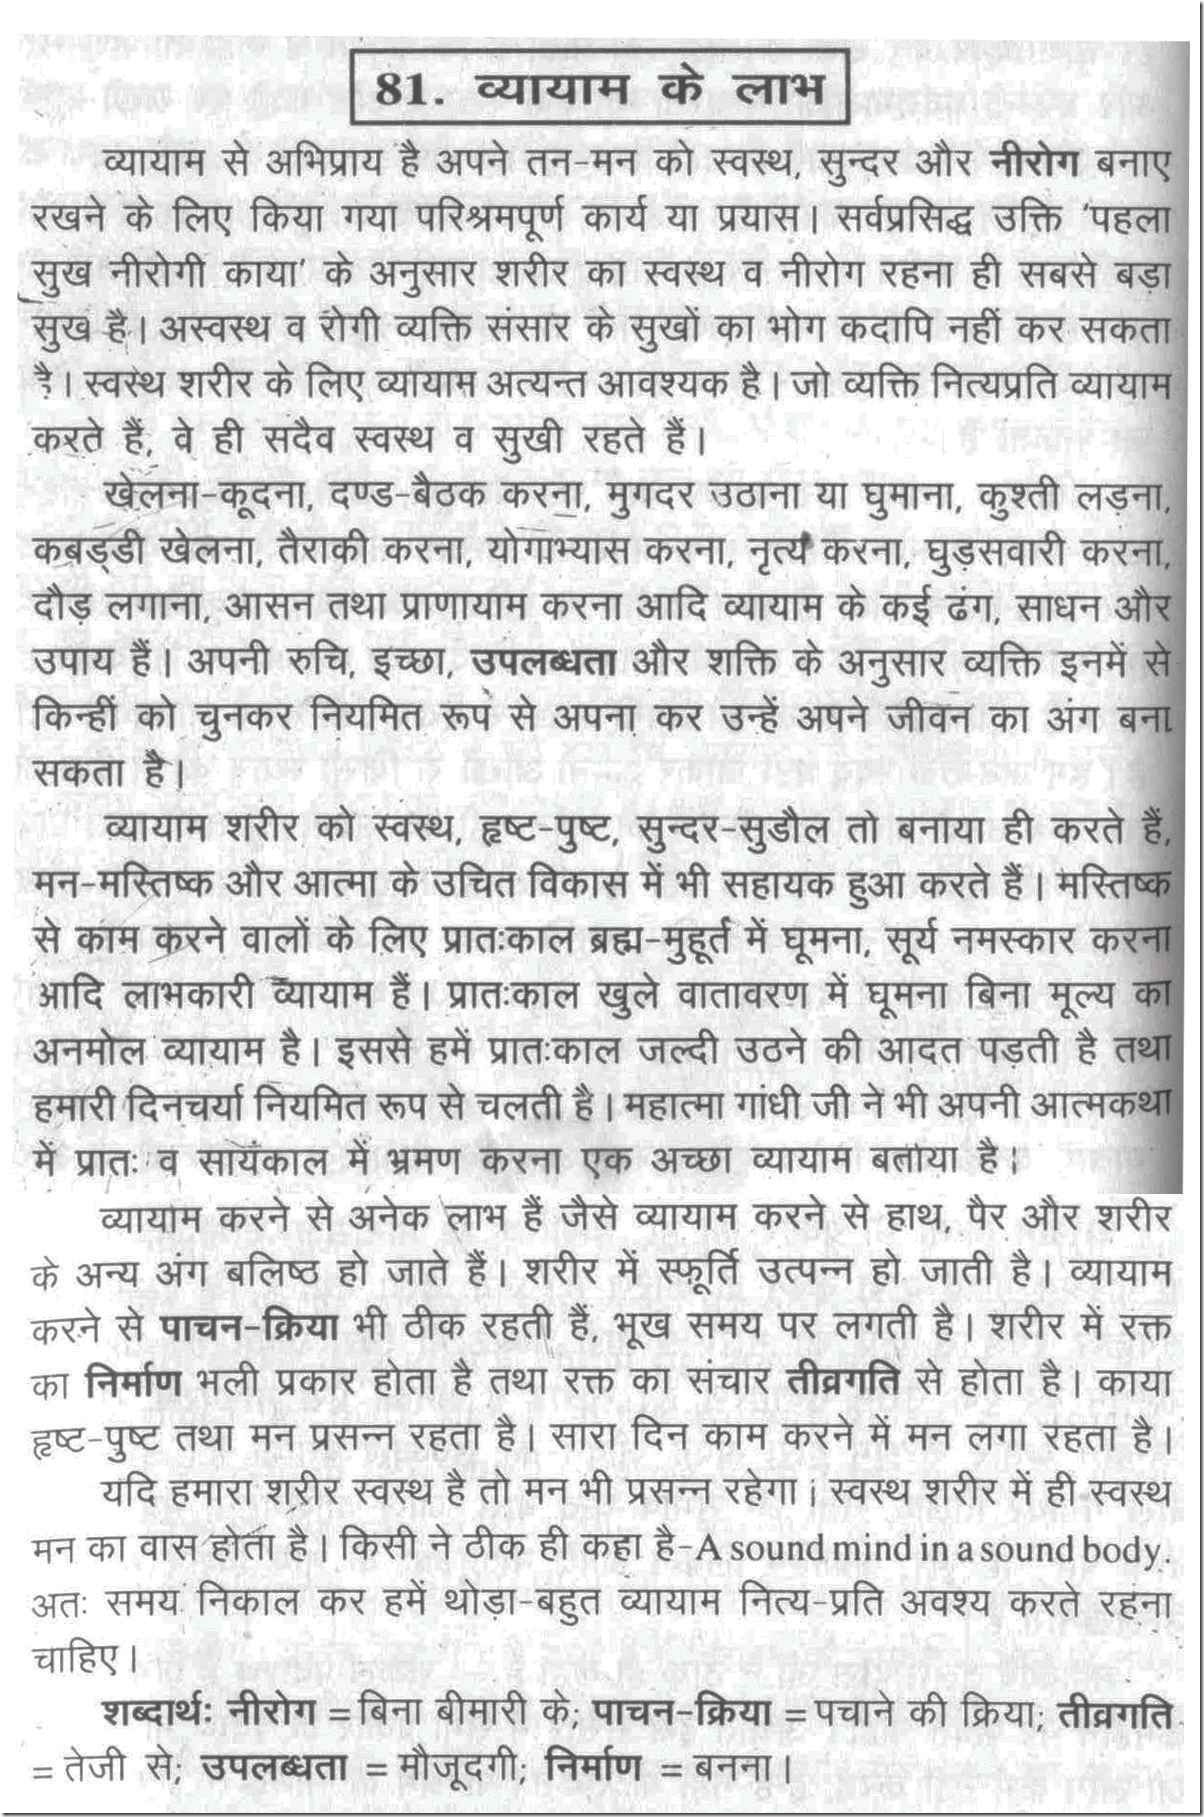 011 2563478896 Essay On Health And Fitness Through Food Good Habits In Hindi Exceptional Bad Eating Habit Full